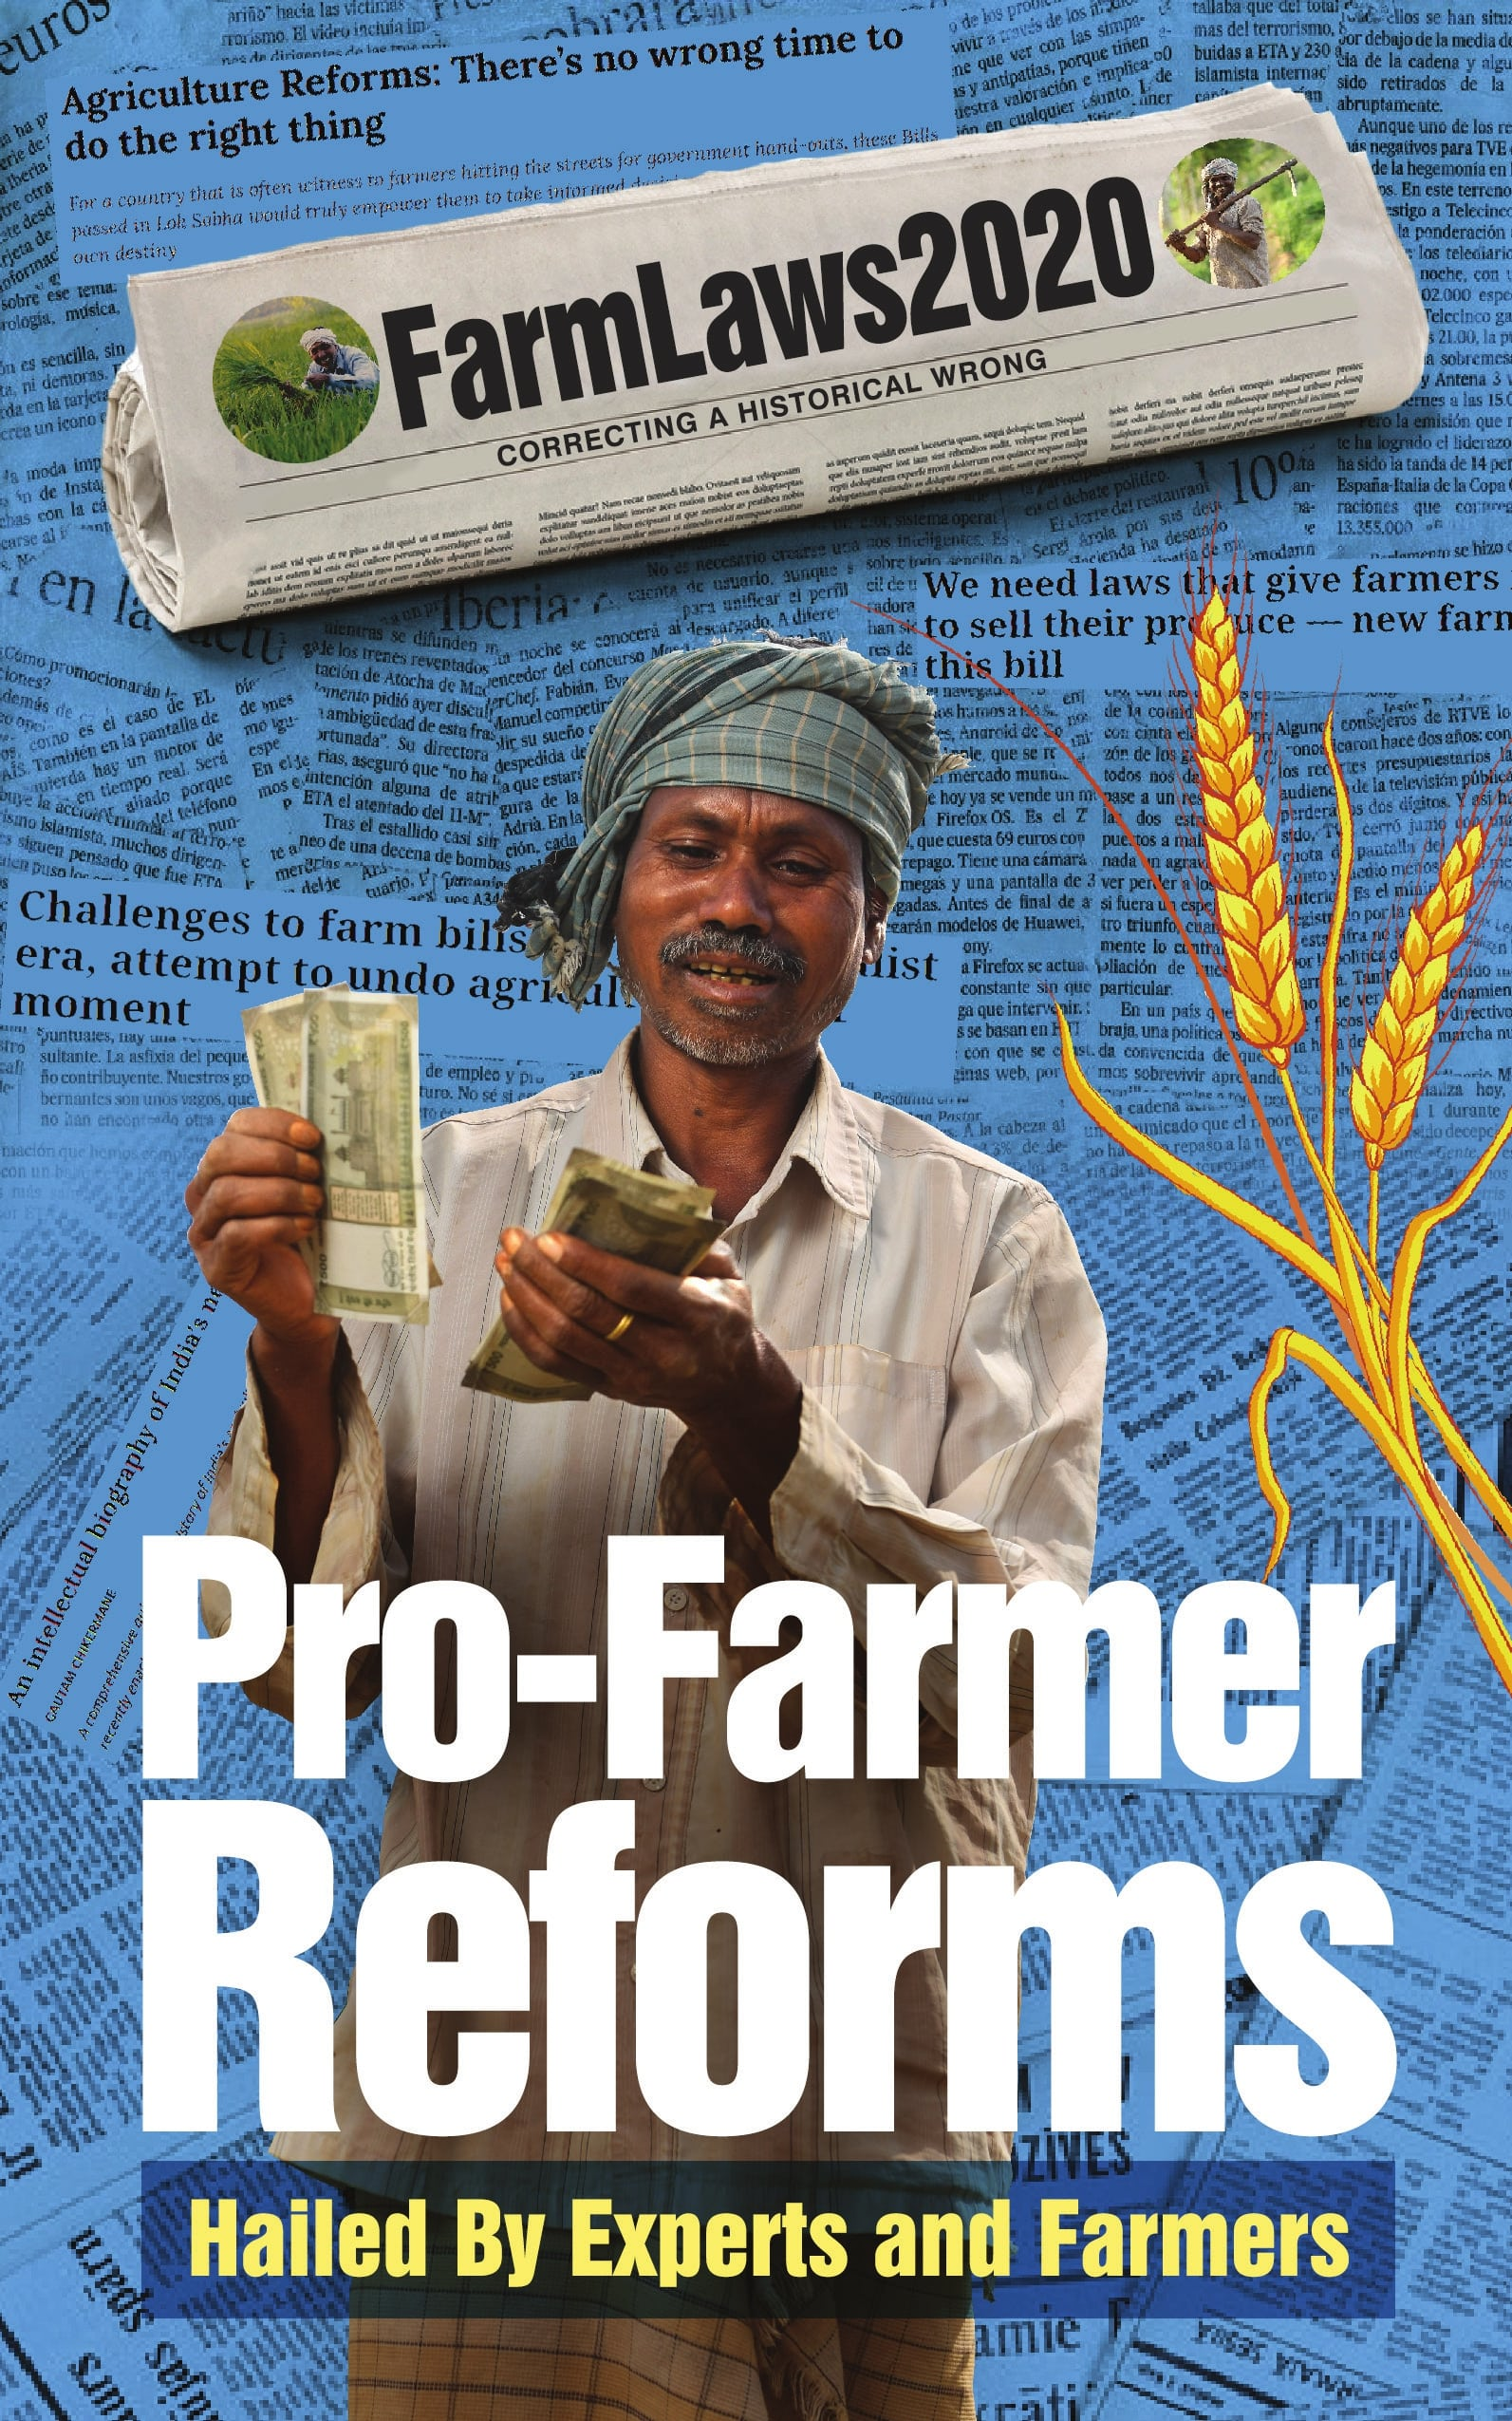 Articles on Farm Laws